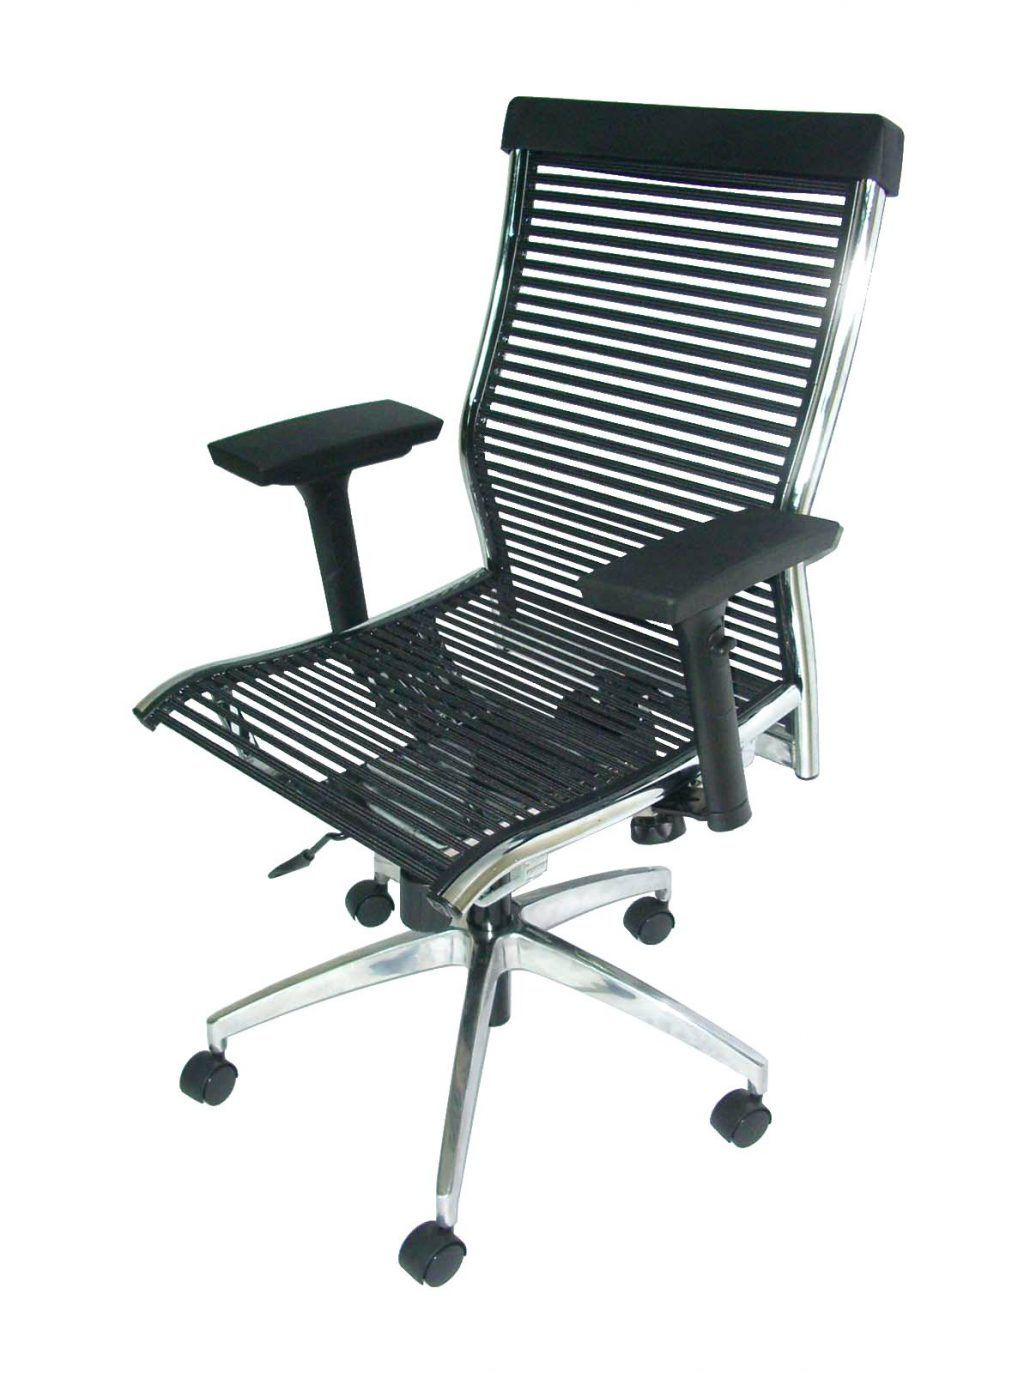 Bungee Office Chair Target - Home Office Furniture Images Check more at //  sc 1 st  Pinterest & Bungee Office Chair Target - Home Office Furniture Images Check more ...